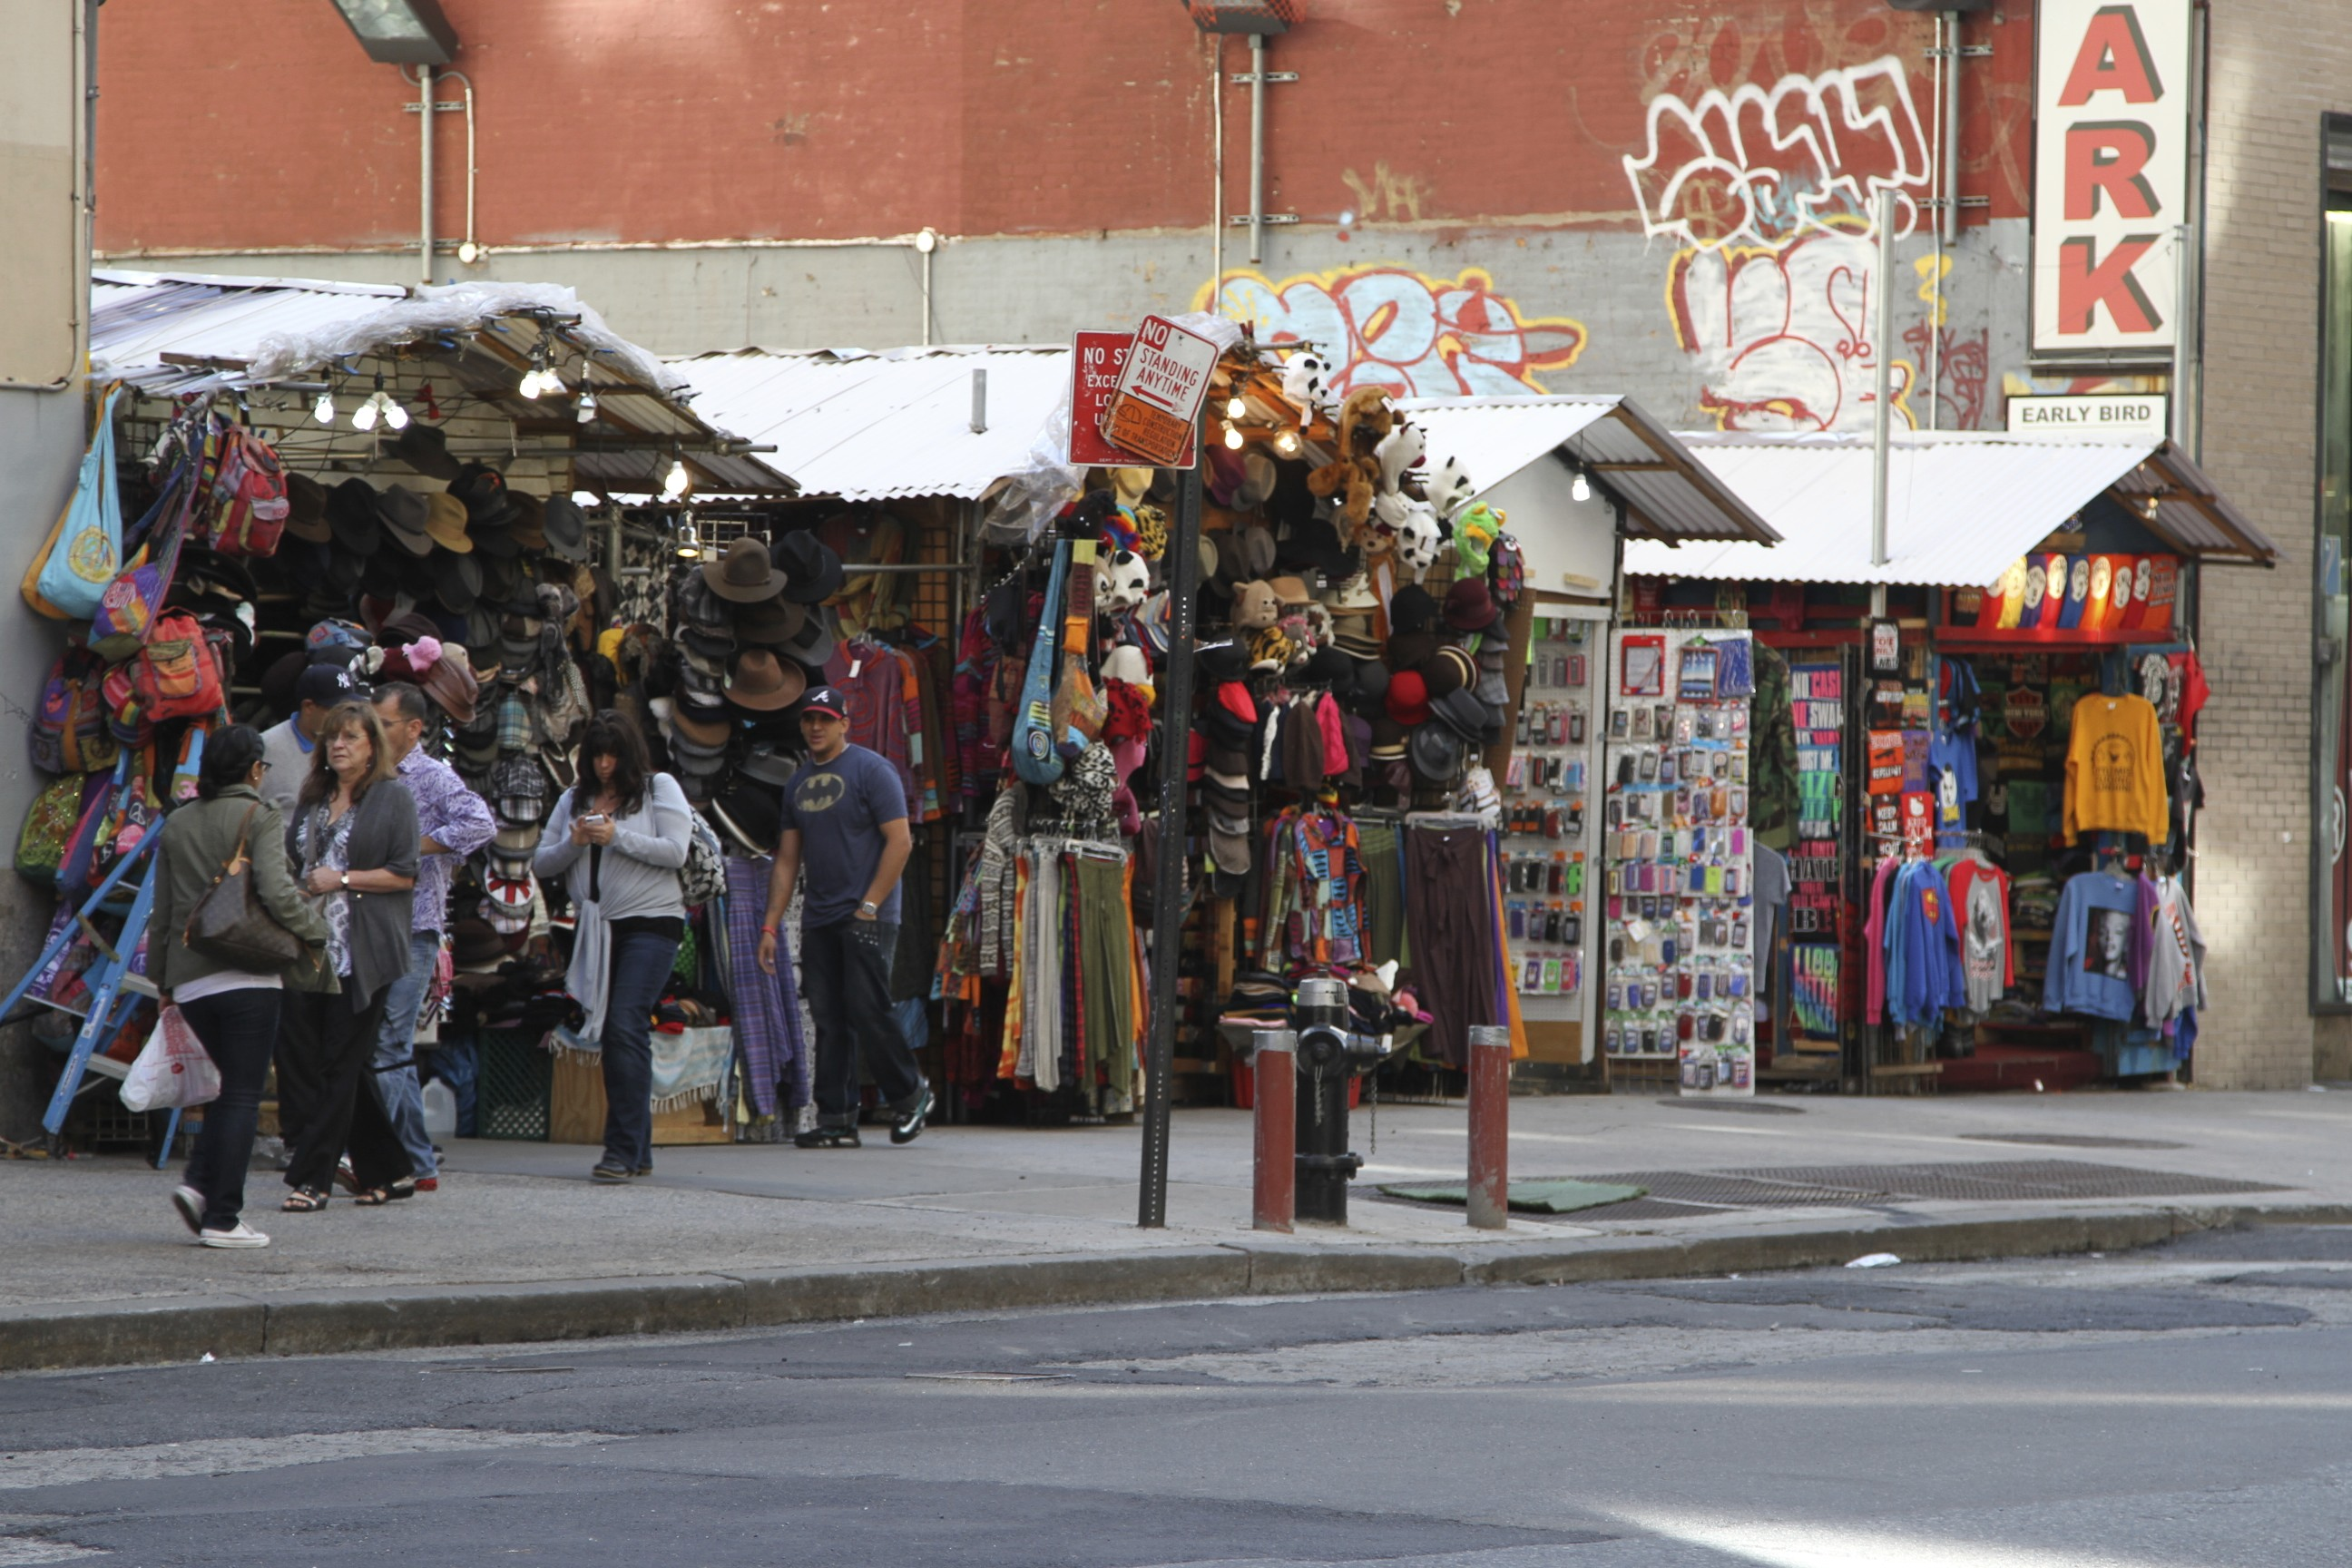 Longstanding NoHo outdoor market to be replaced by Condos